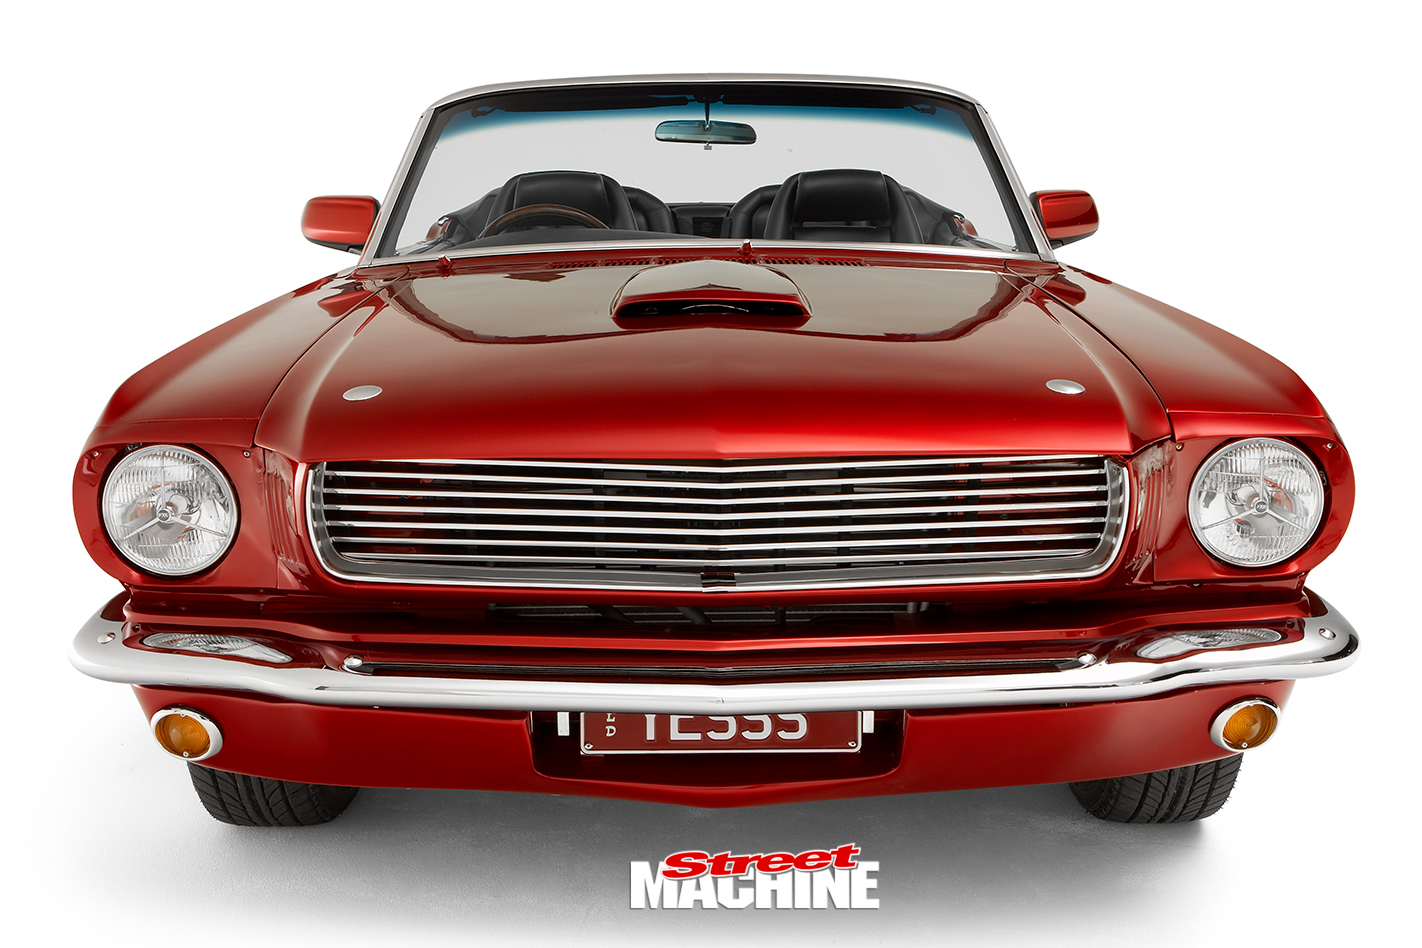 Marshall -Perron -Pro -Touring -Mustang -front